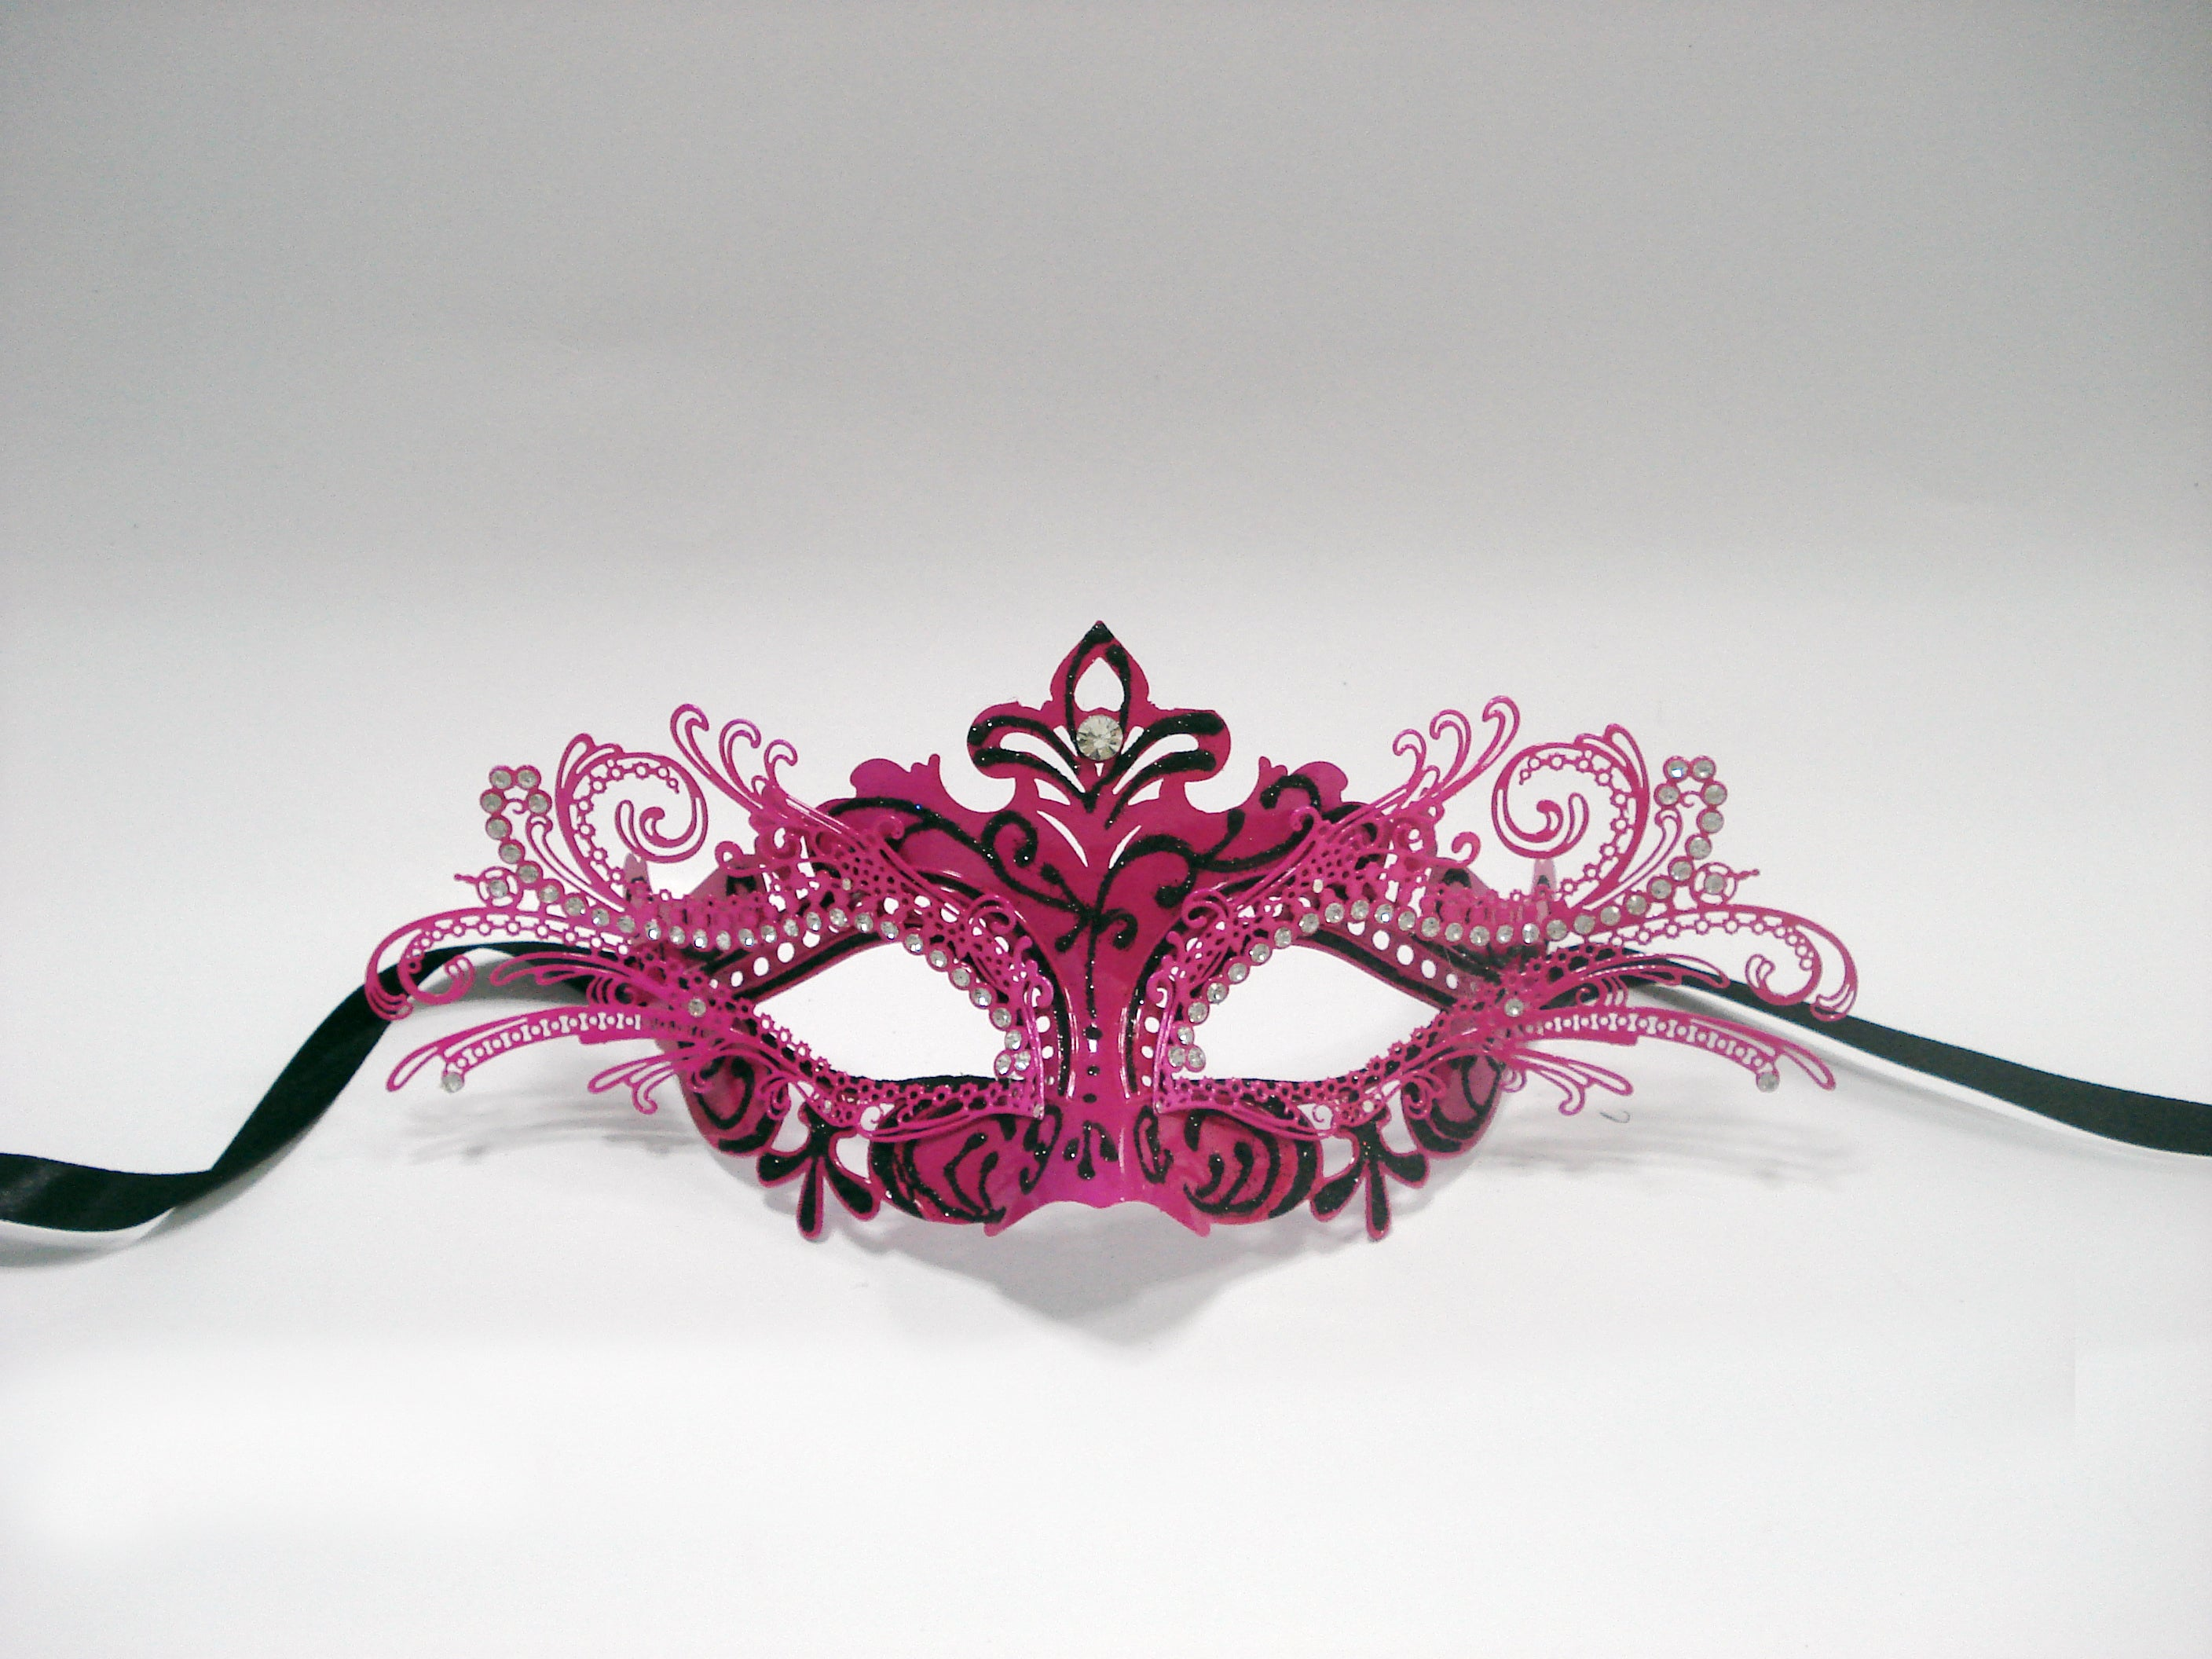 MK125 - Pink & Blk Mask -CLEARANCE 50% OFF LISTED PRICE